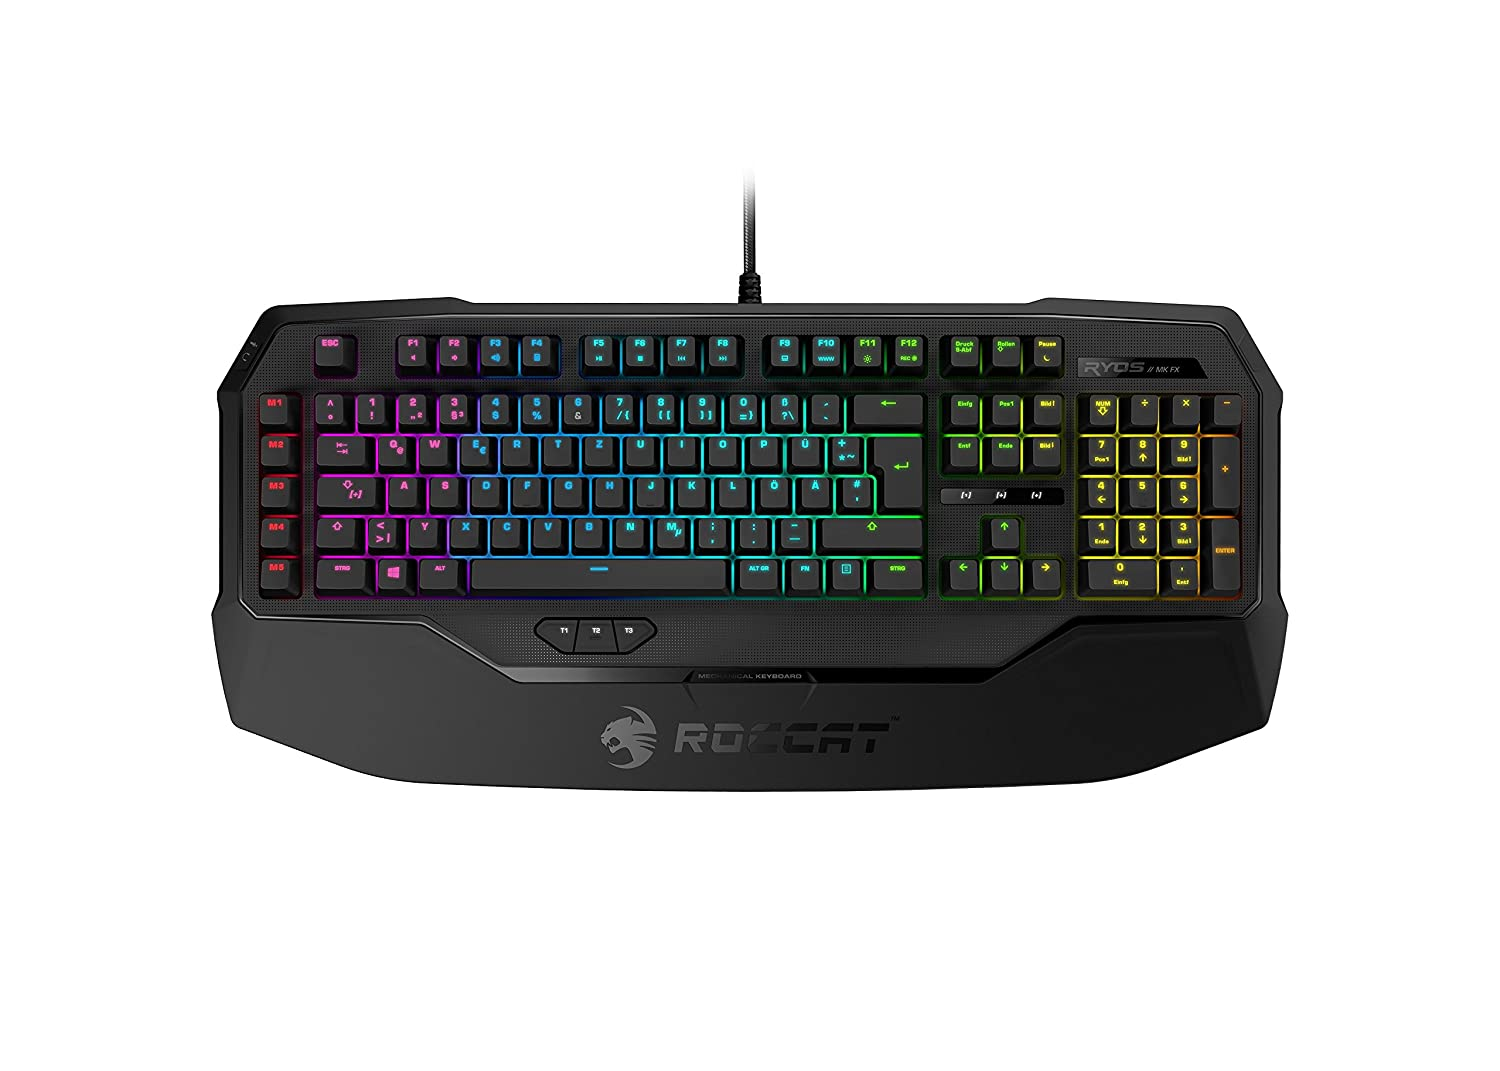 【予約中!】 ROCCAT RYOS MK FX - RGB MECHANICAL GAMING FX KEYBOARD WITH - PER-KEY RGB ILLUMINATION - B B01BFZL72I, 和風三昧光悦:ae66c4c7 --- nicolasalvioli.com